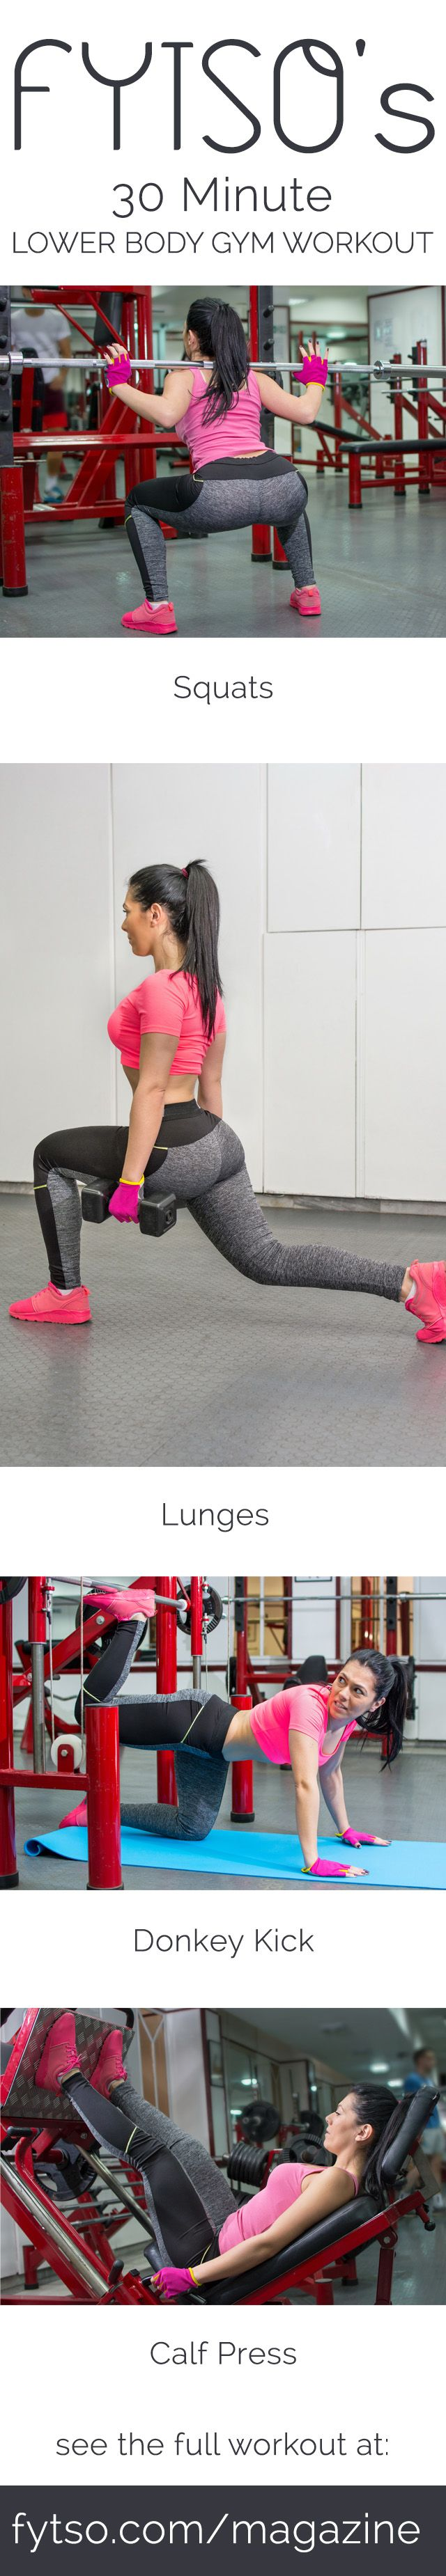 This 30 minute workout will get you in and out of the gym in half an hour while offering a significant workout.